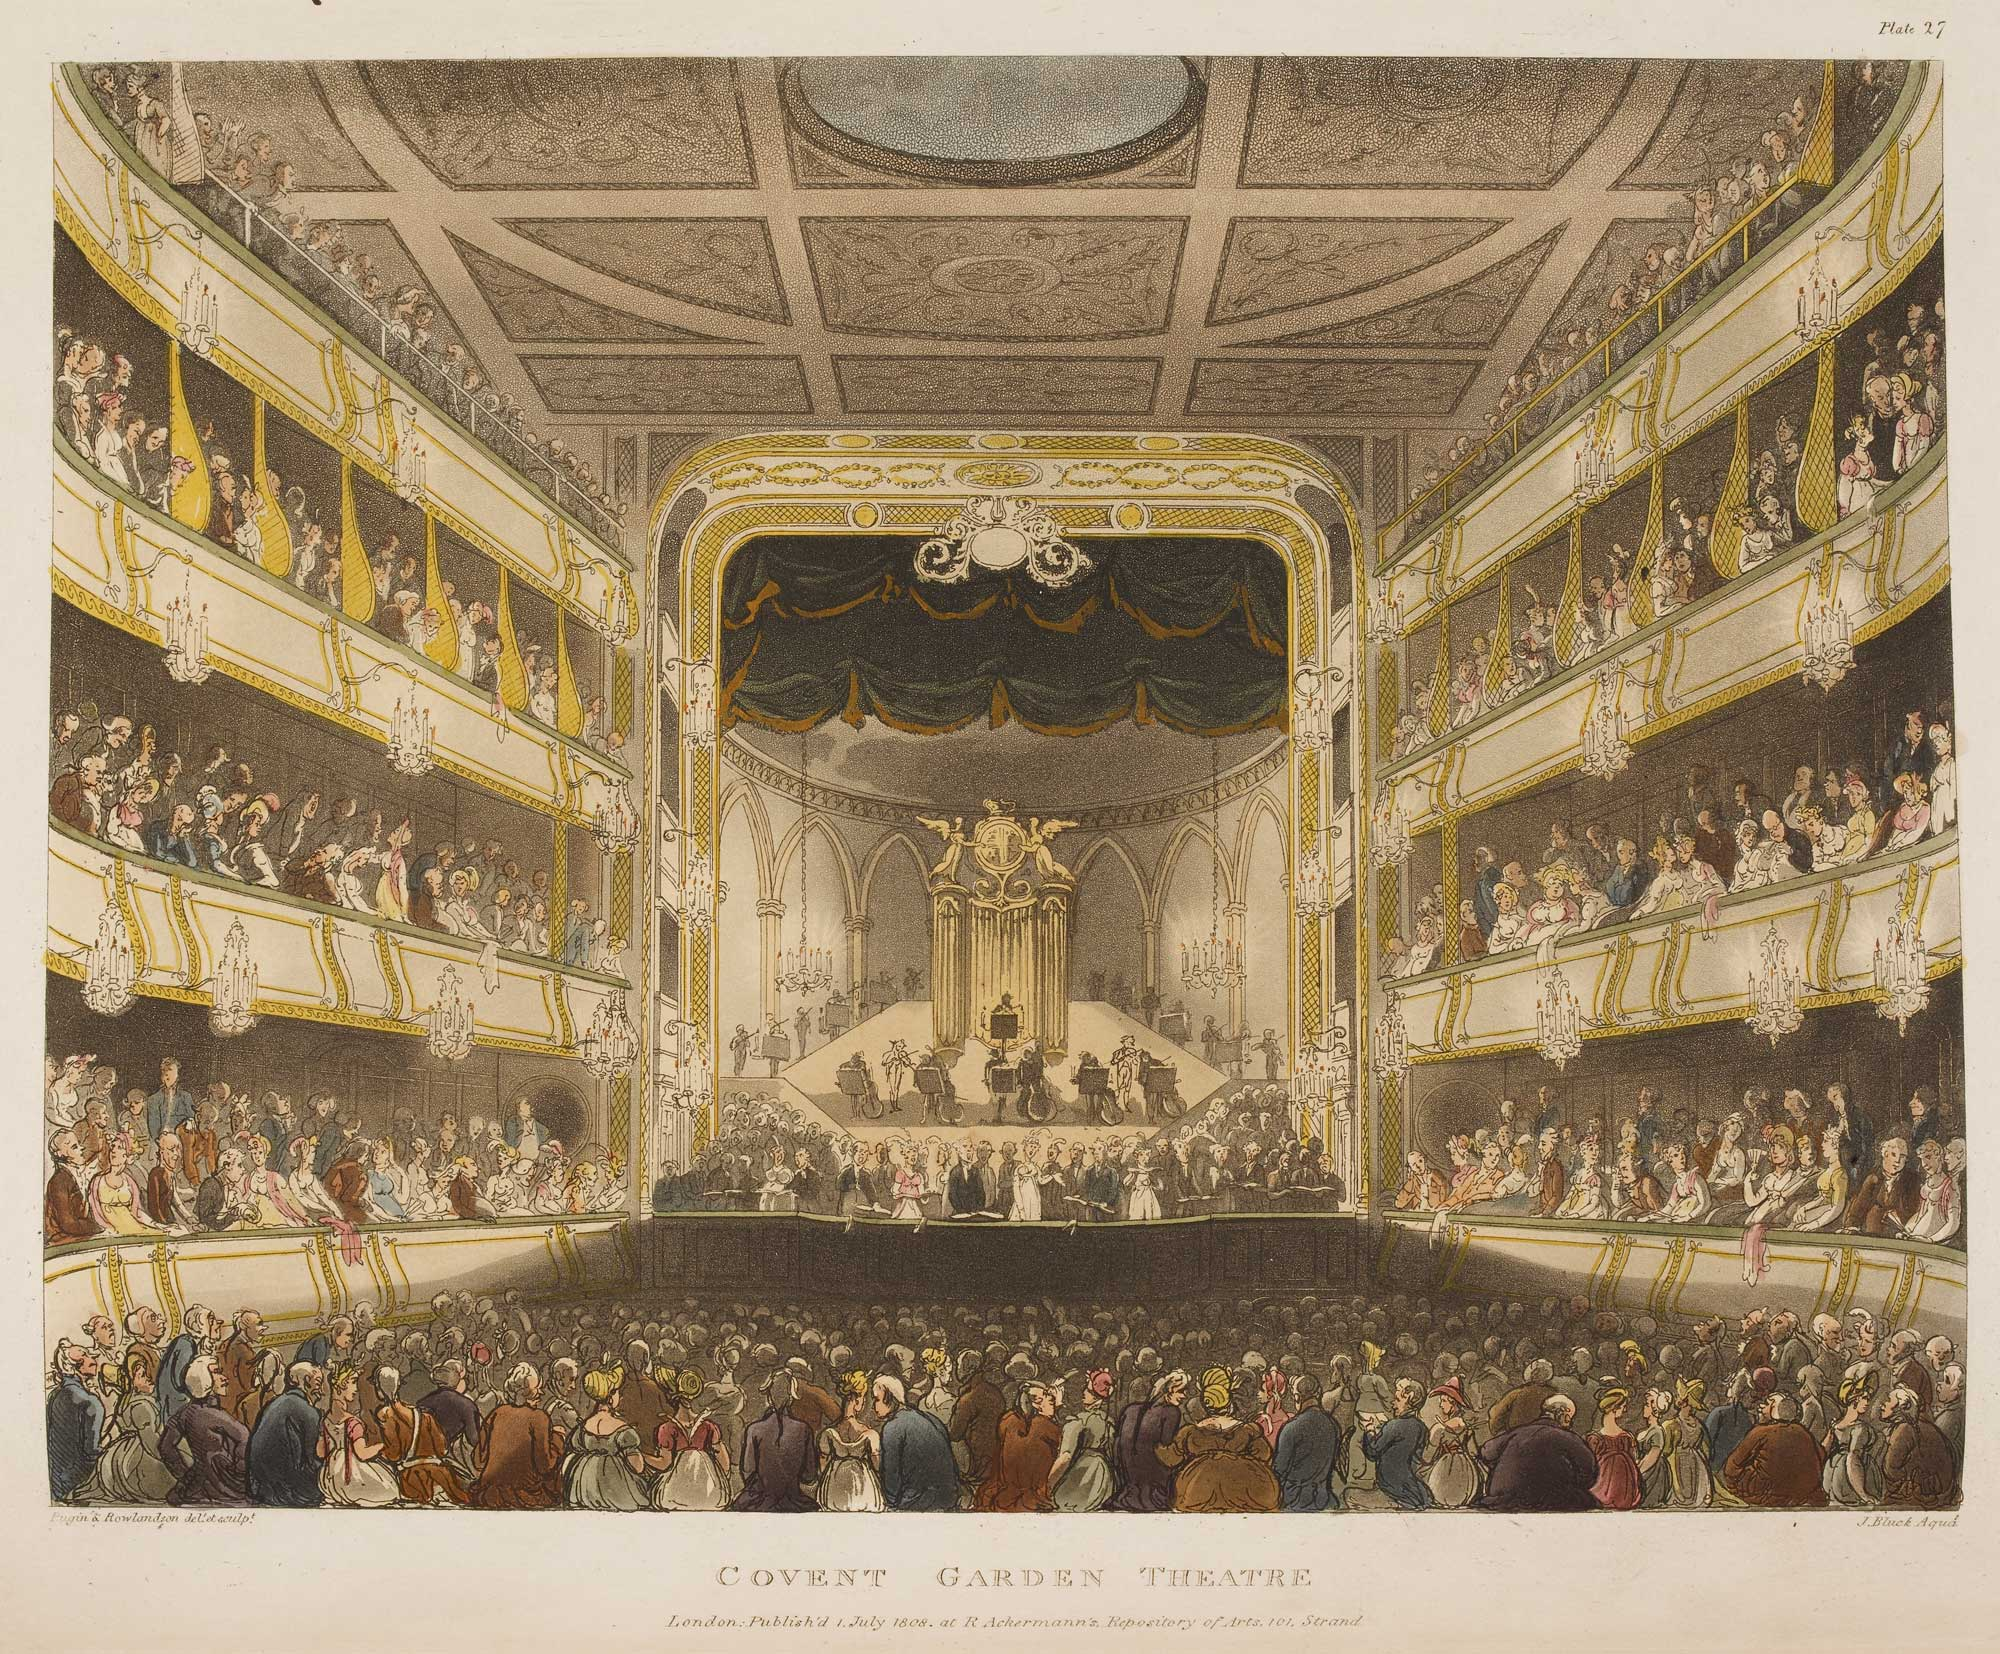 Illustration of Covent Garden Theatre